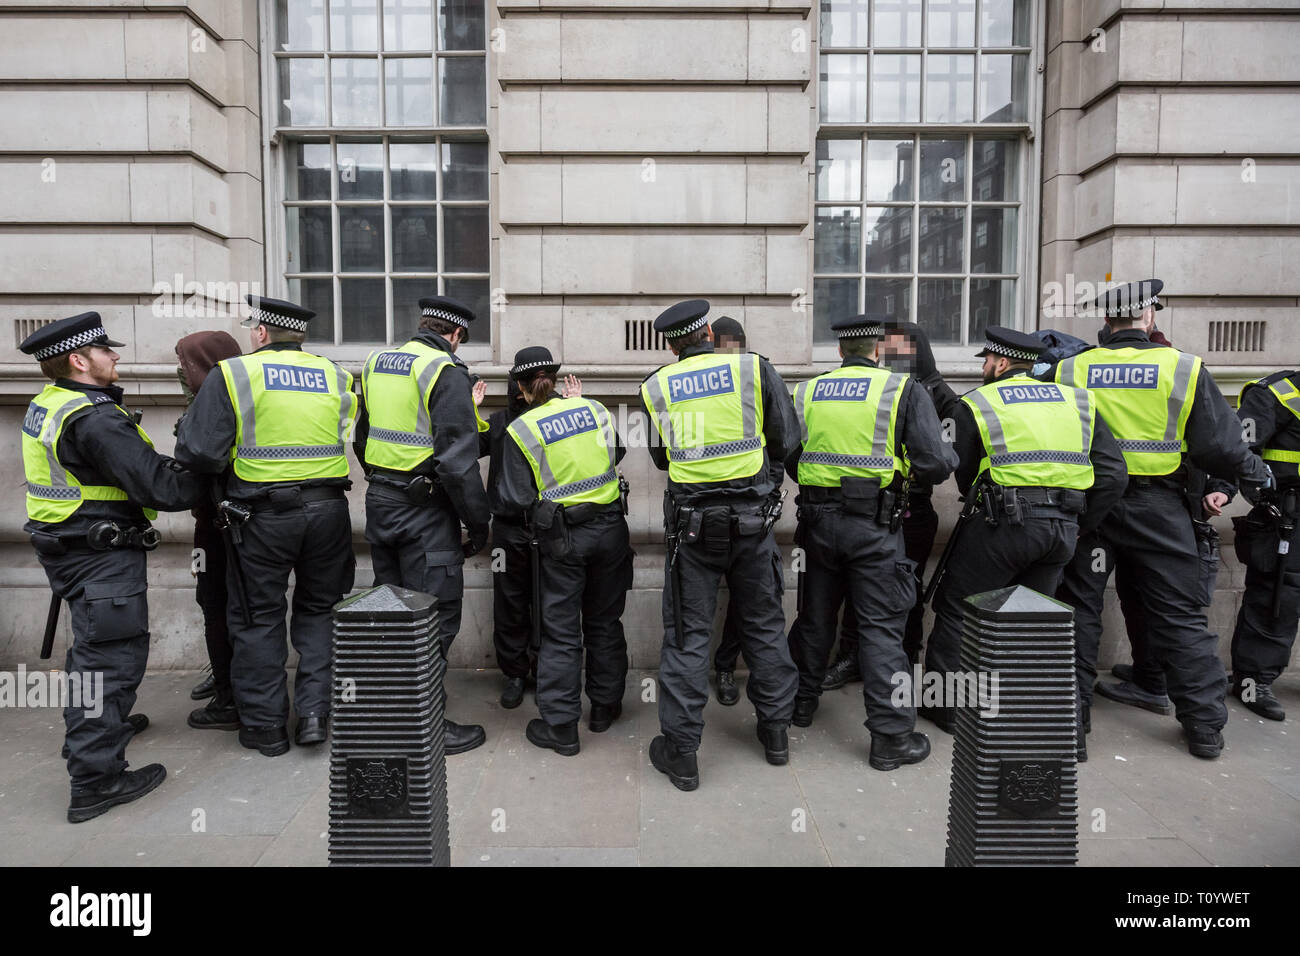 """London, UK. 1st April, 2017. Anti-Fascist groups including Unite Against Fascism (UAF) clash with police with some arrests being made whilst counter-protesting far-right British nationalist groups including Britain First and the English Defence League (EDL) during their """"march against terrorism"""" through central London in light of the recent terror attacks in Westminster. Police arrested 14 people during the clashes. Credit: Guy Corbishley/Alamy Live News - Stock Image"""